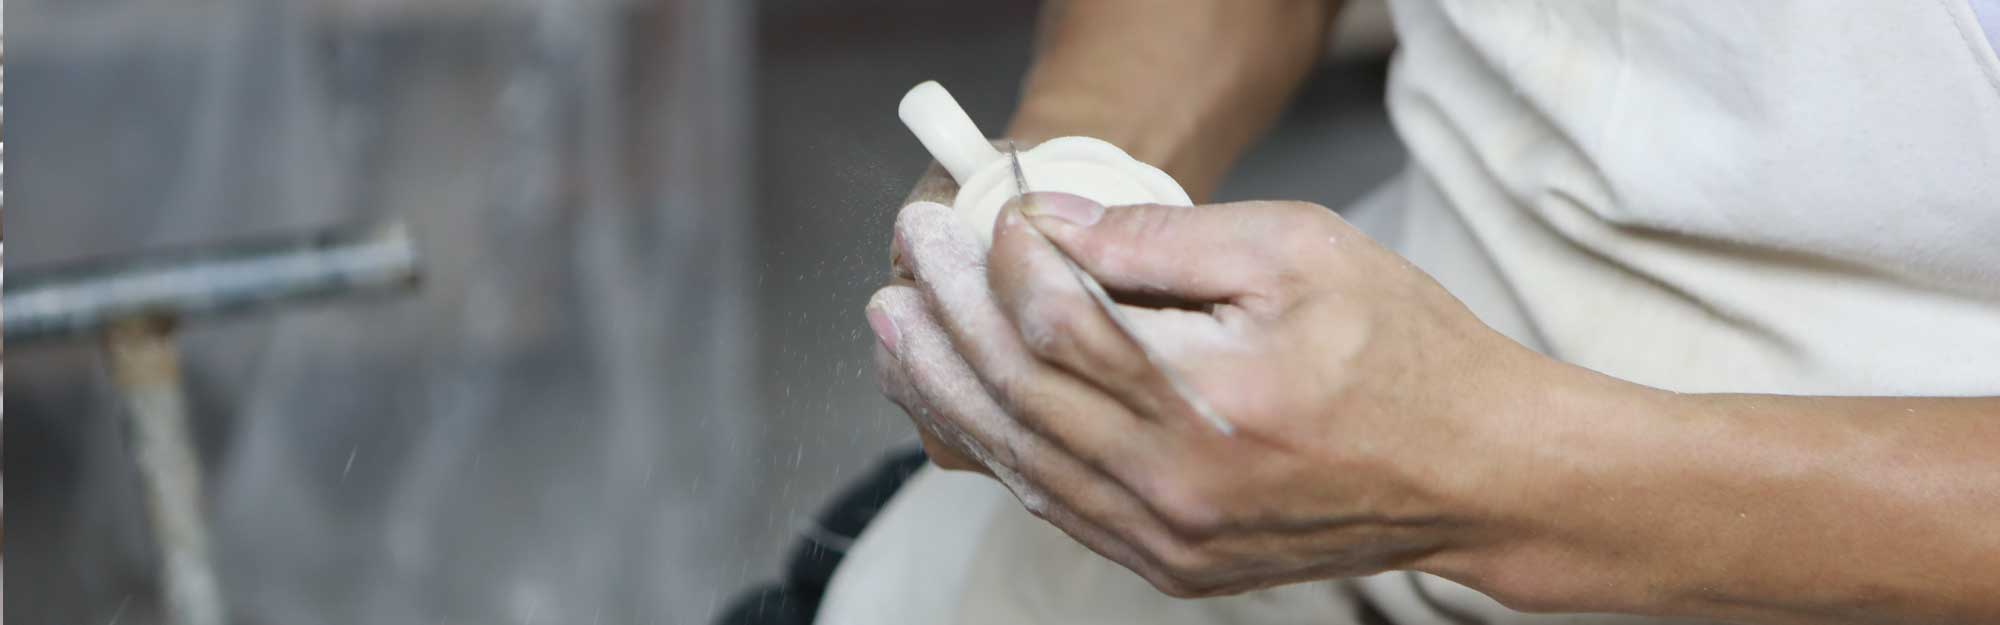 Hand covered in dust carving unfinished ceramic dish